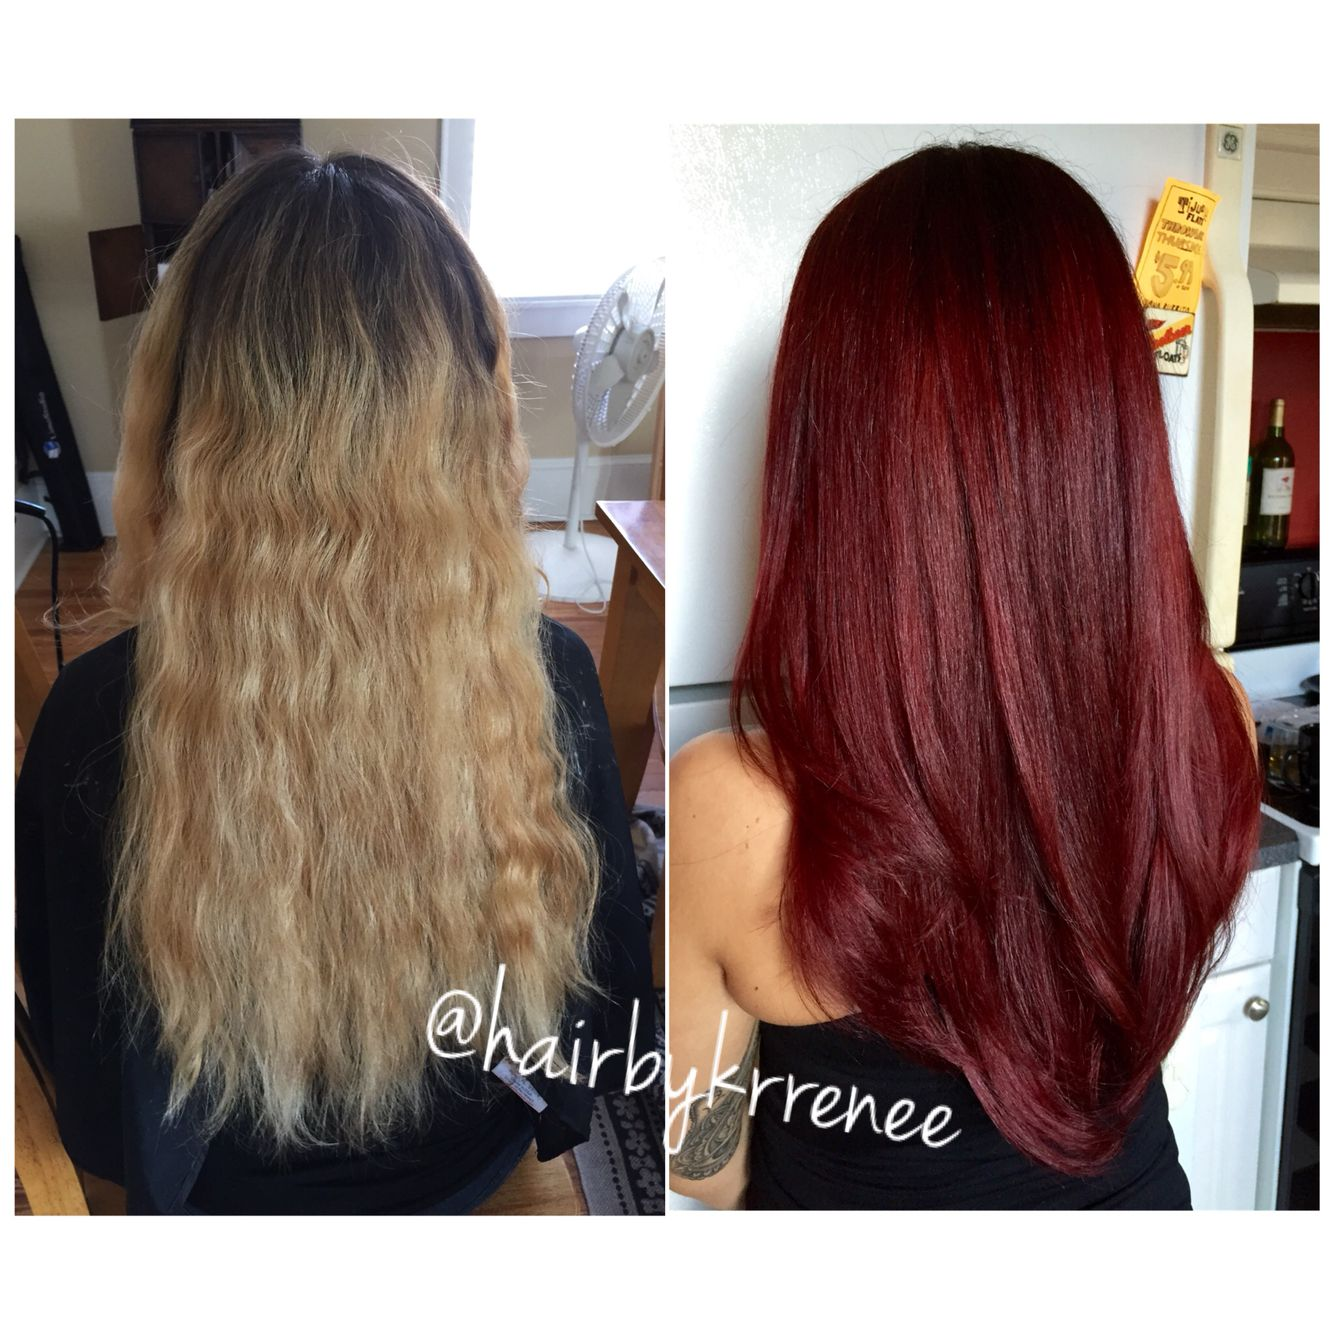 Before And After Blonde To Dark Red Hair For Fall Such A Transformation By Kristenmackoul Fall Red Hair Deep Red Hair Red Hair Color